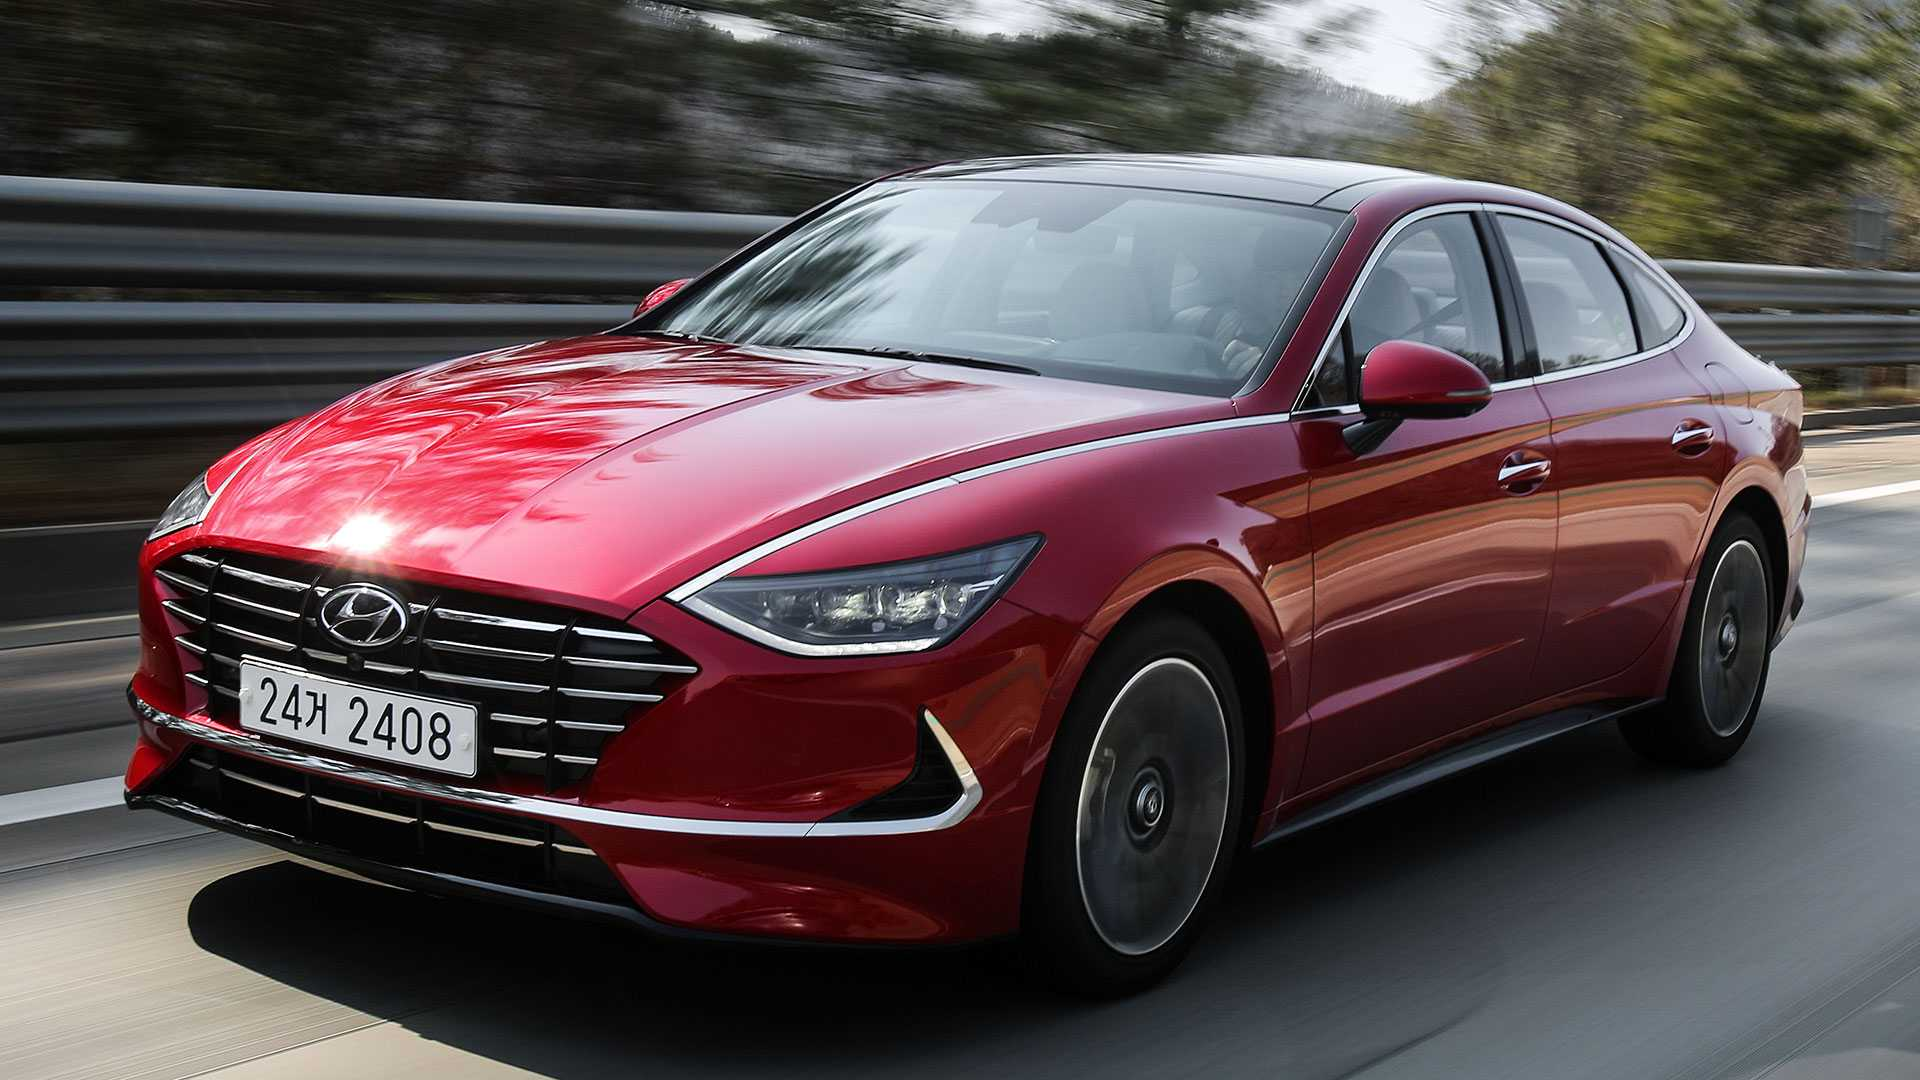 90 All New Hyundai New Sonata 2020 Price And Review